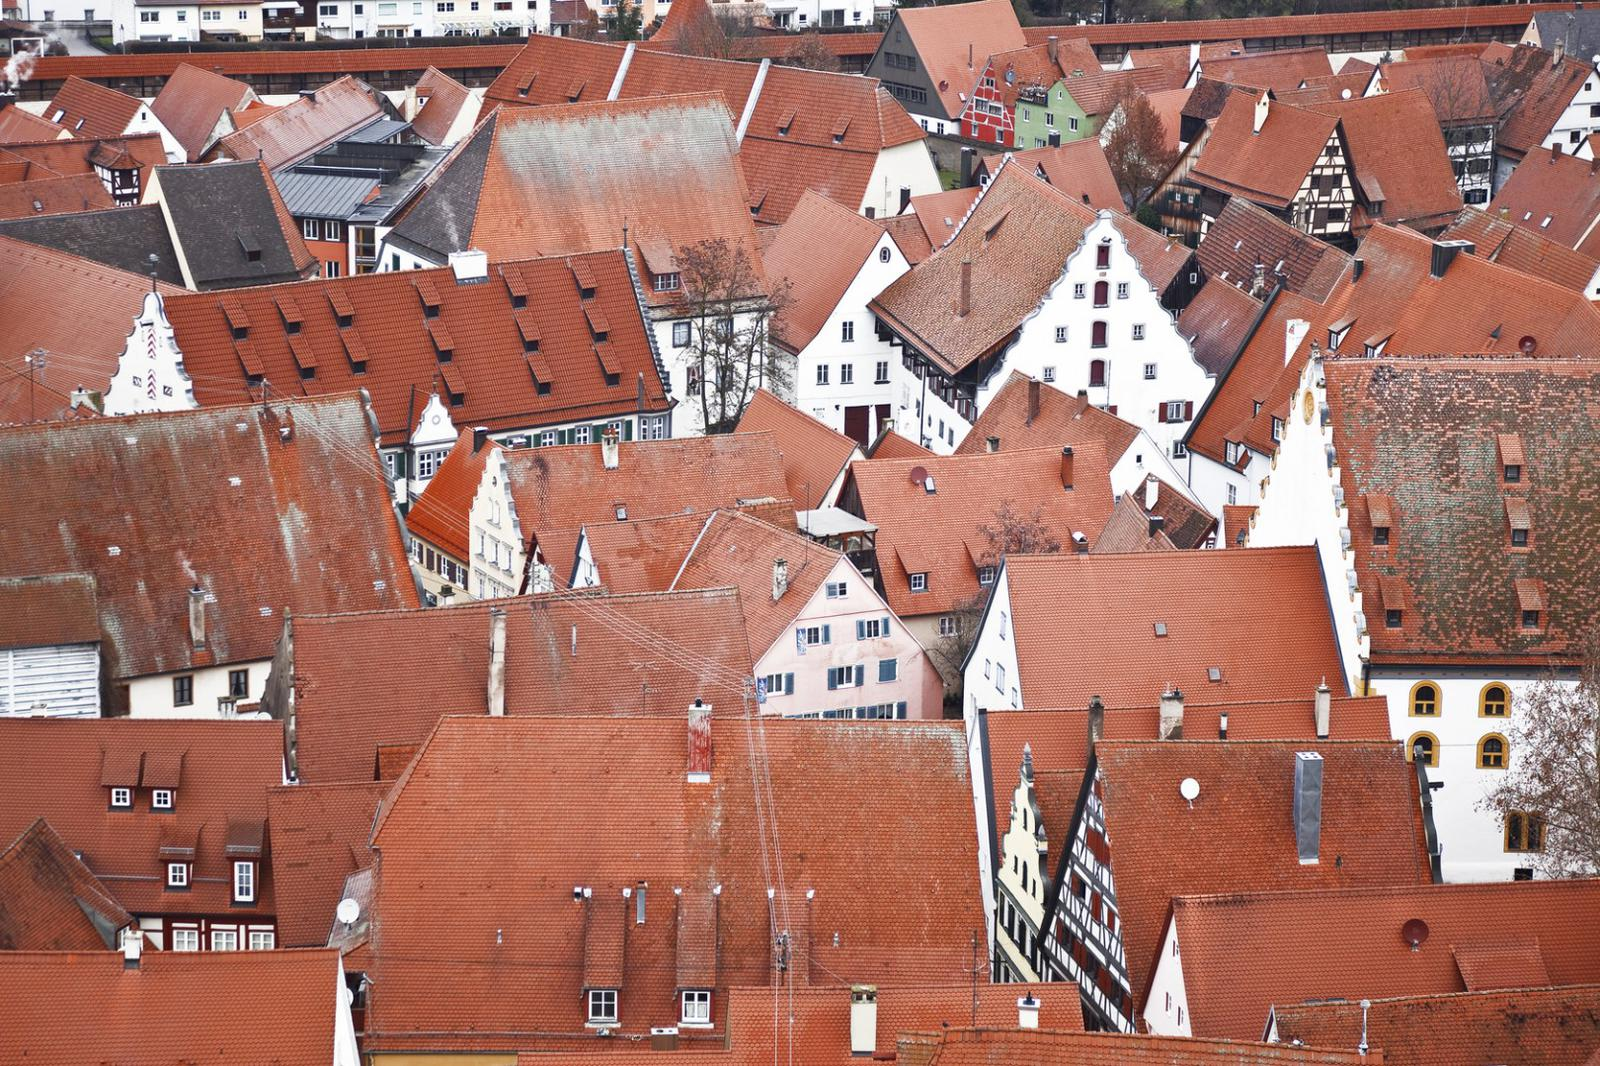 pueblos curiosos Nördlingen, Germany, Bavaria, view from the top